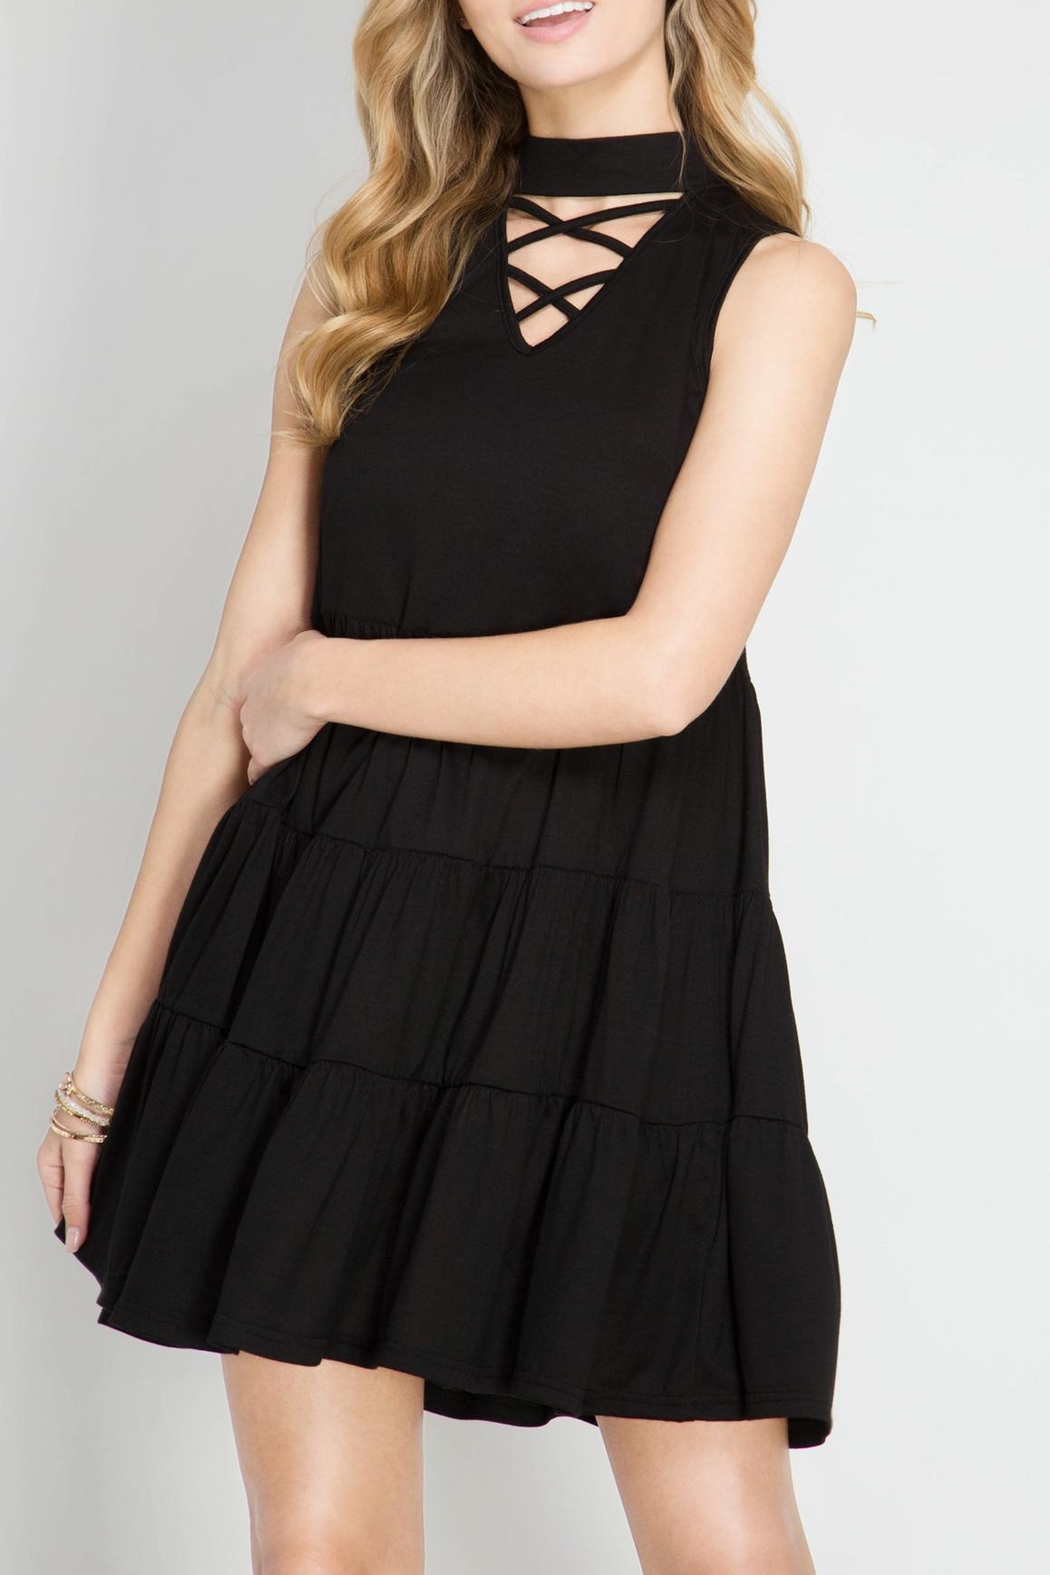 She + Sky Crisscross Spaghetti Dress - Front Cropped Image